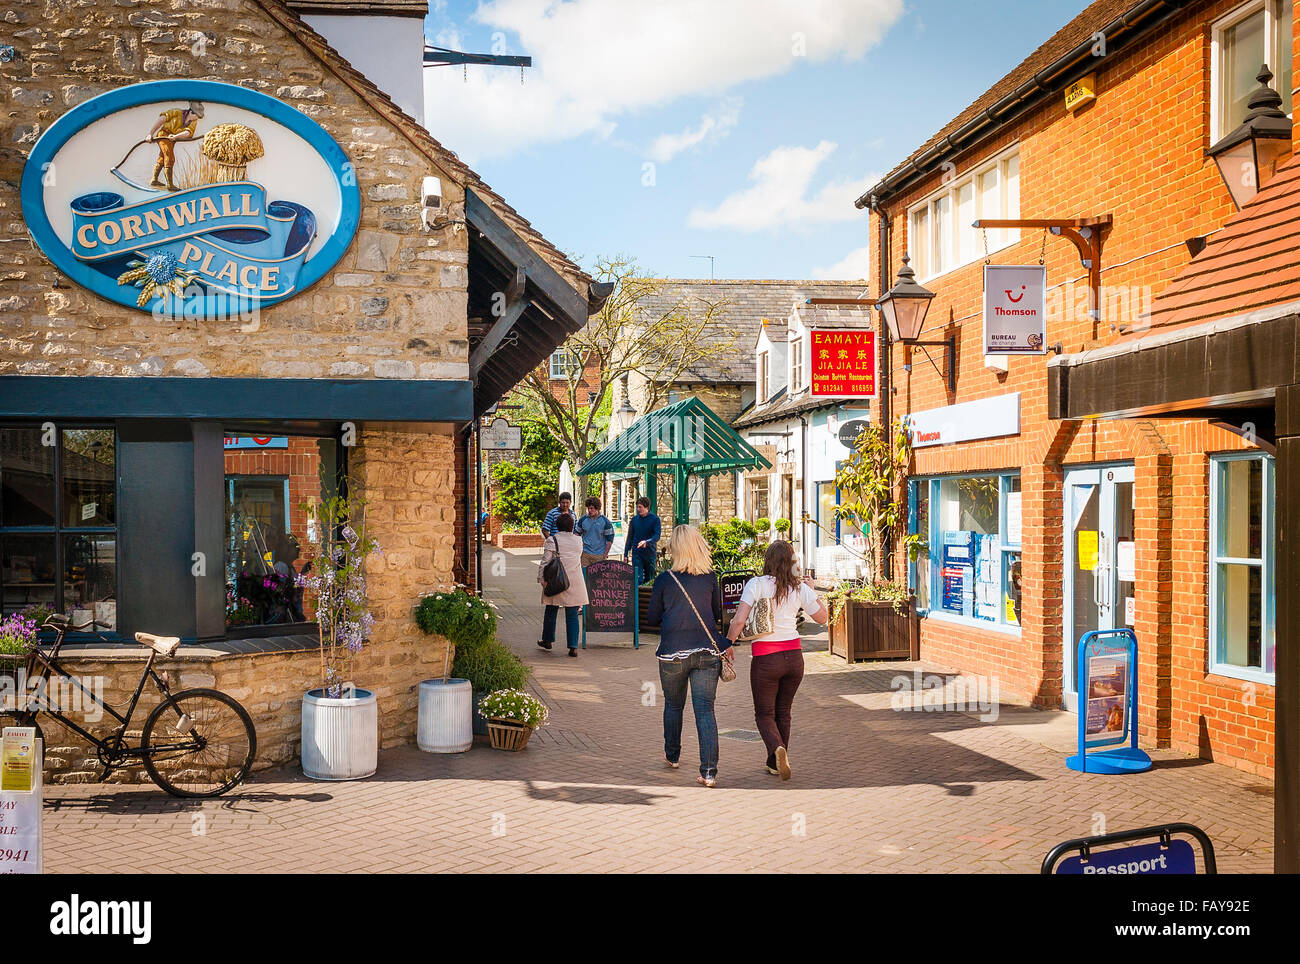 Cornwal Place shopping precinct in centre of Buckingham town UK - Stock Image